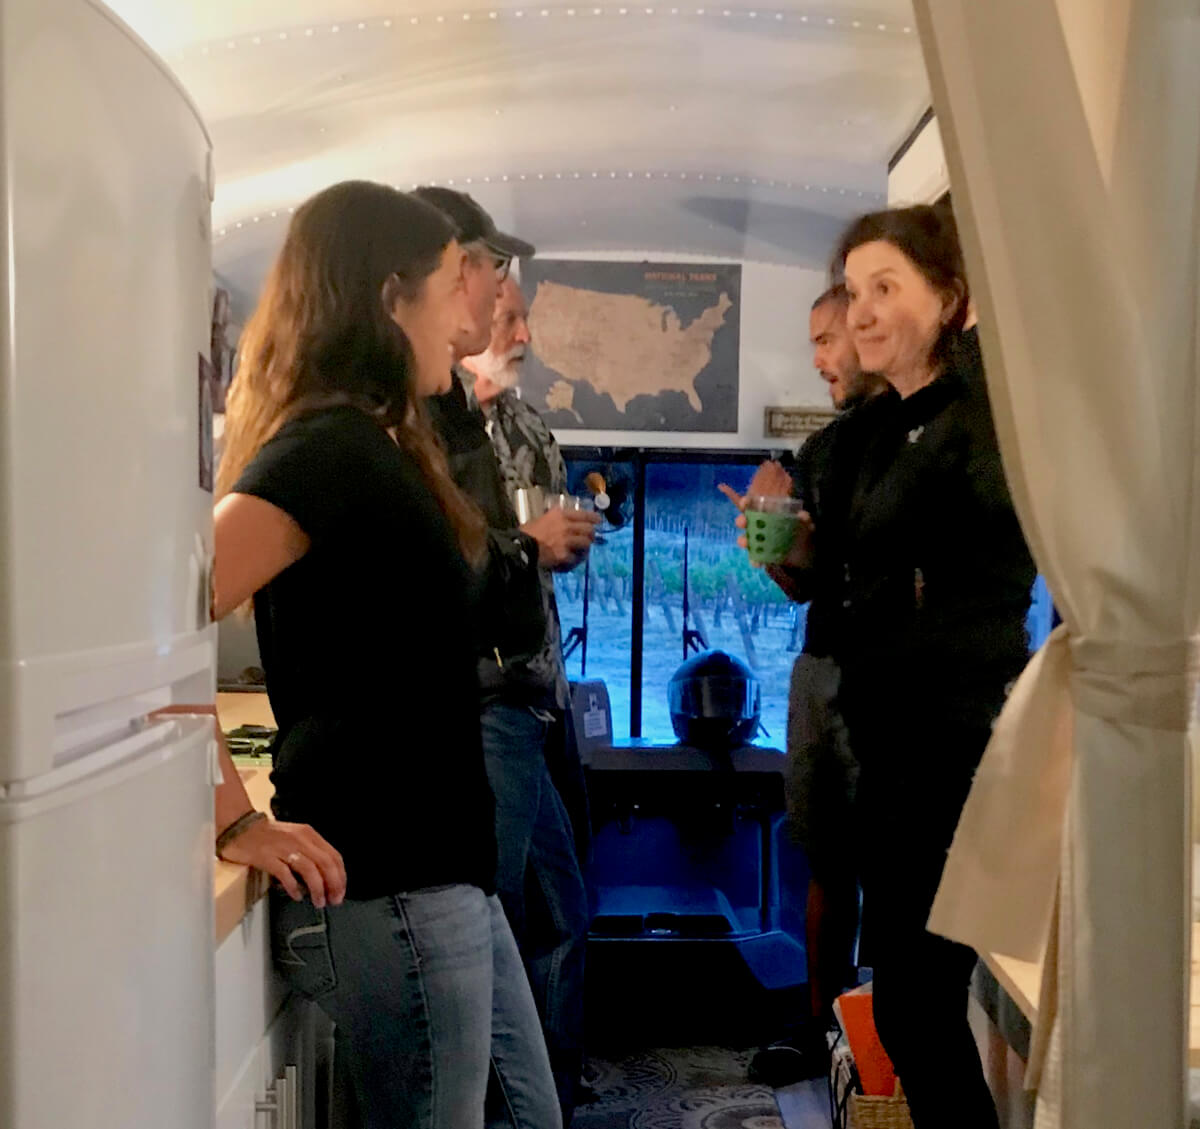 Inside Mike and Erin's bus